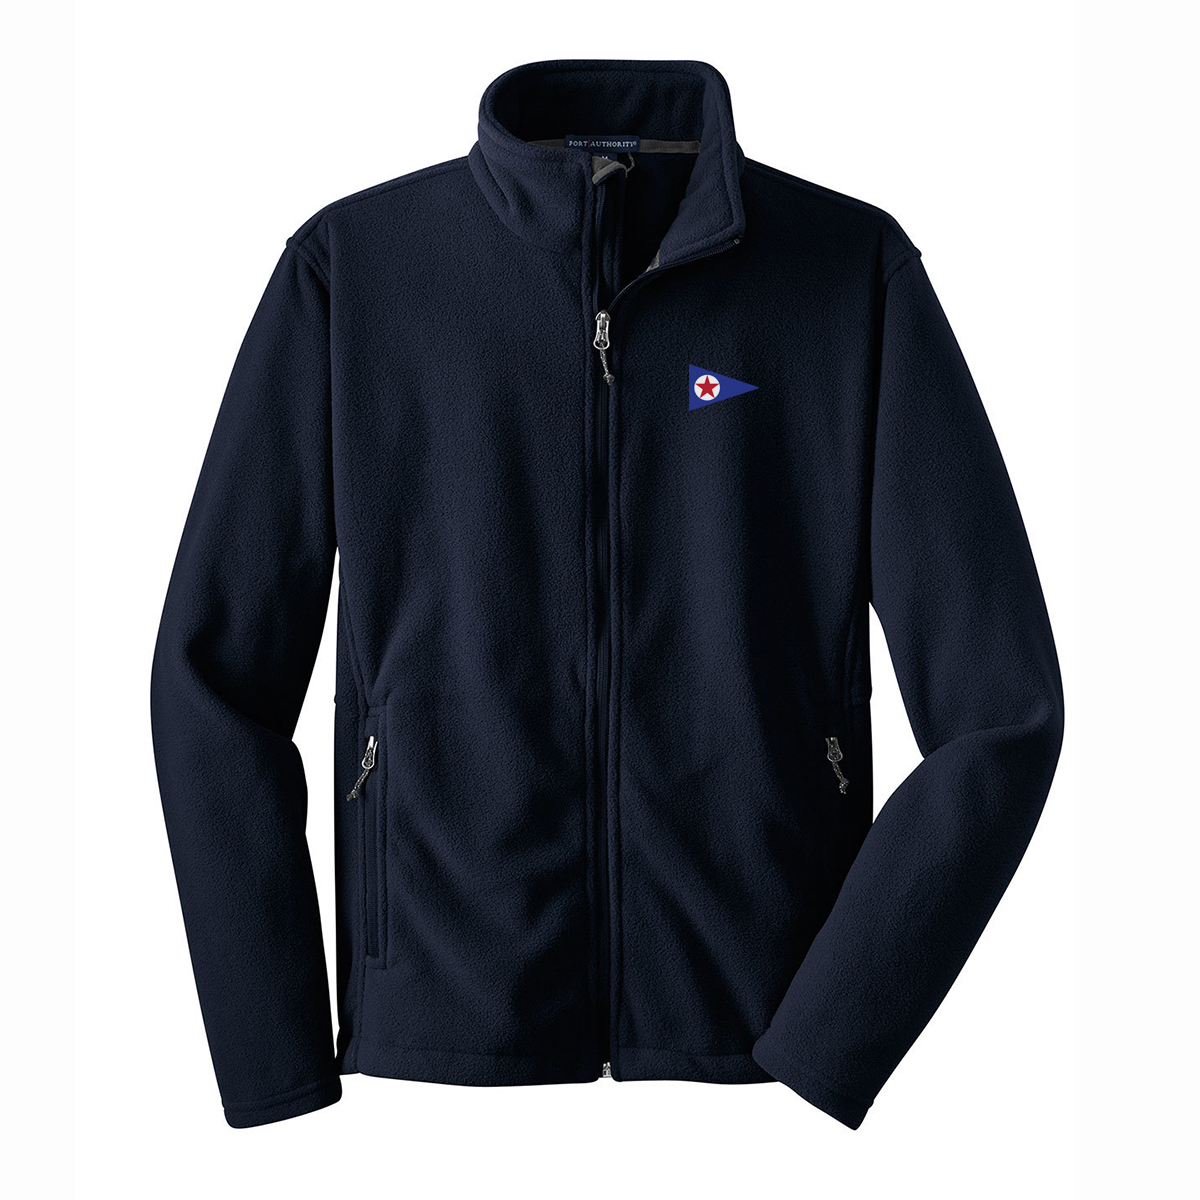 Barnstable Yacht Club -  Men's Value Fleece Jacket (BNY401)